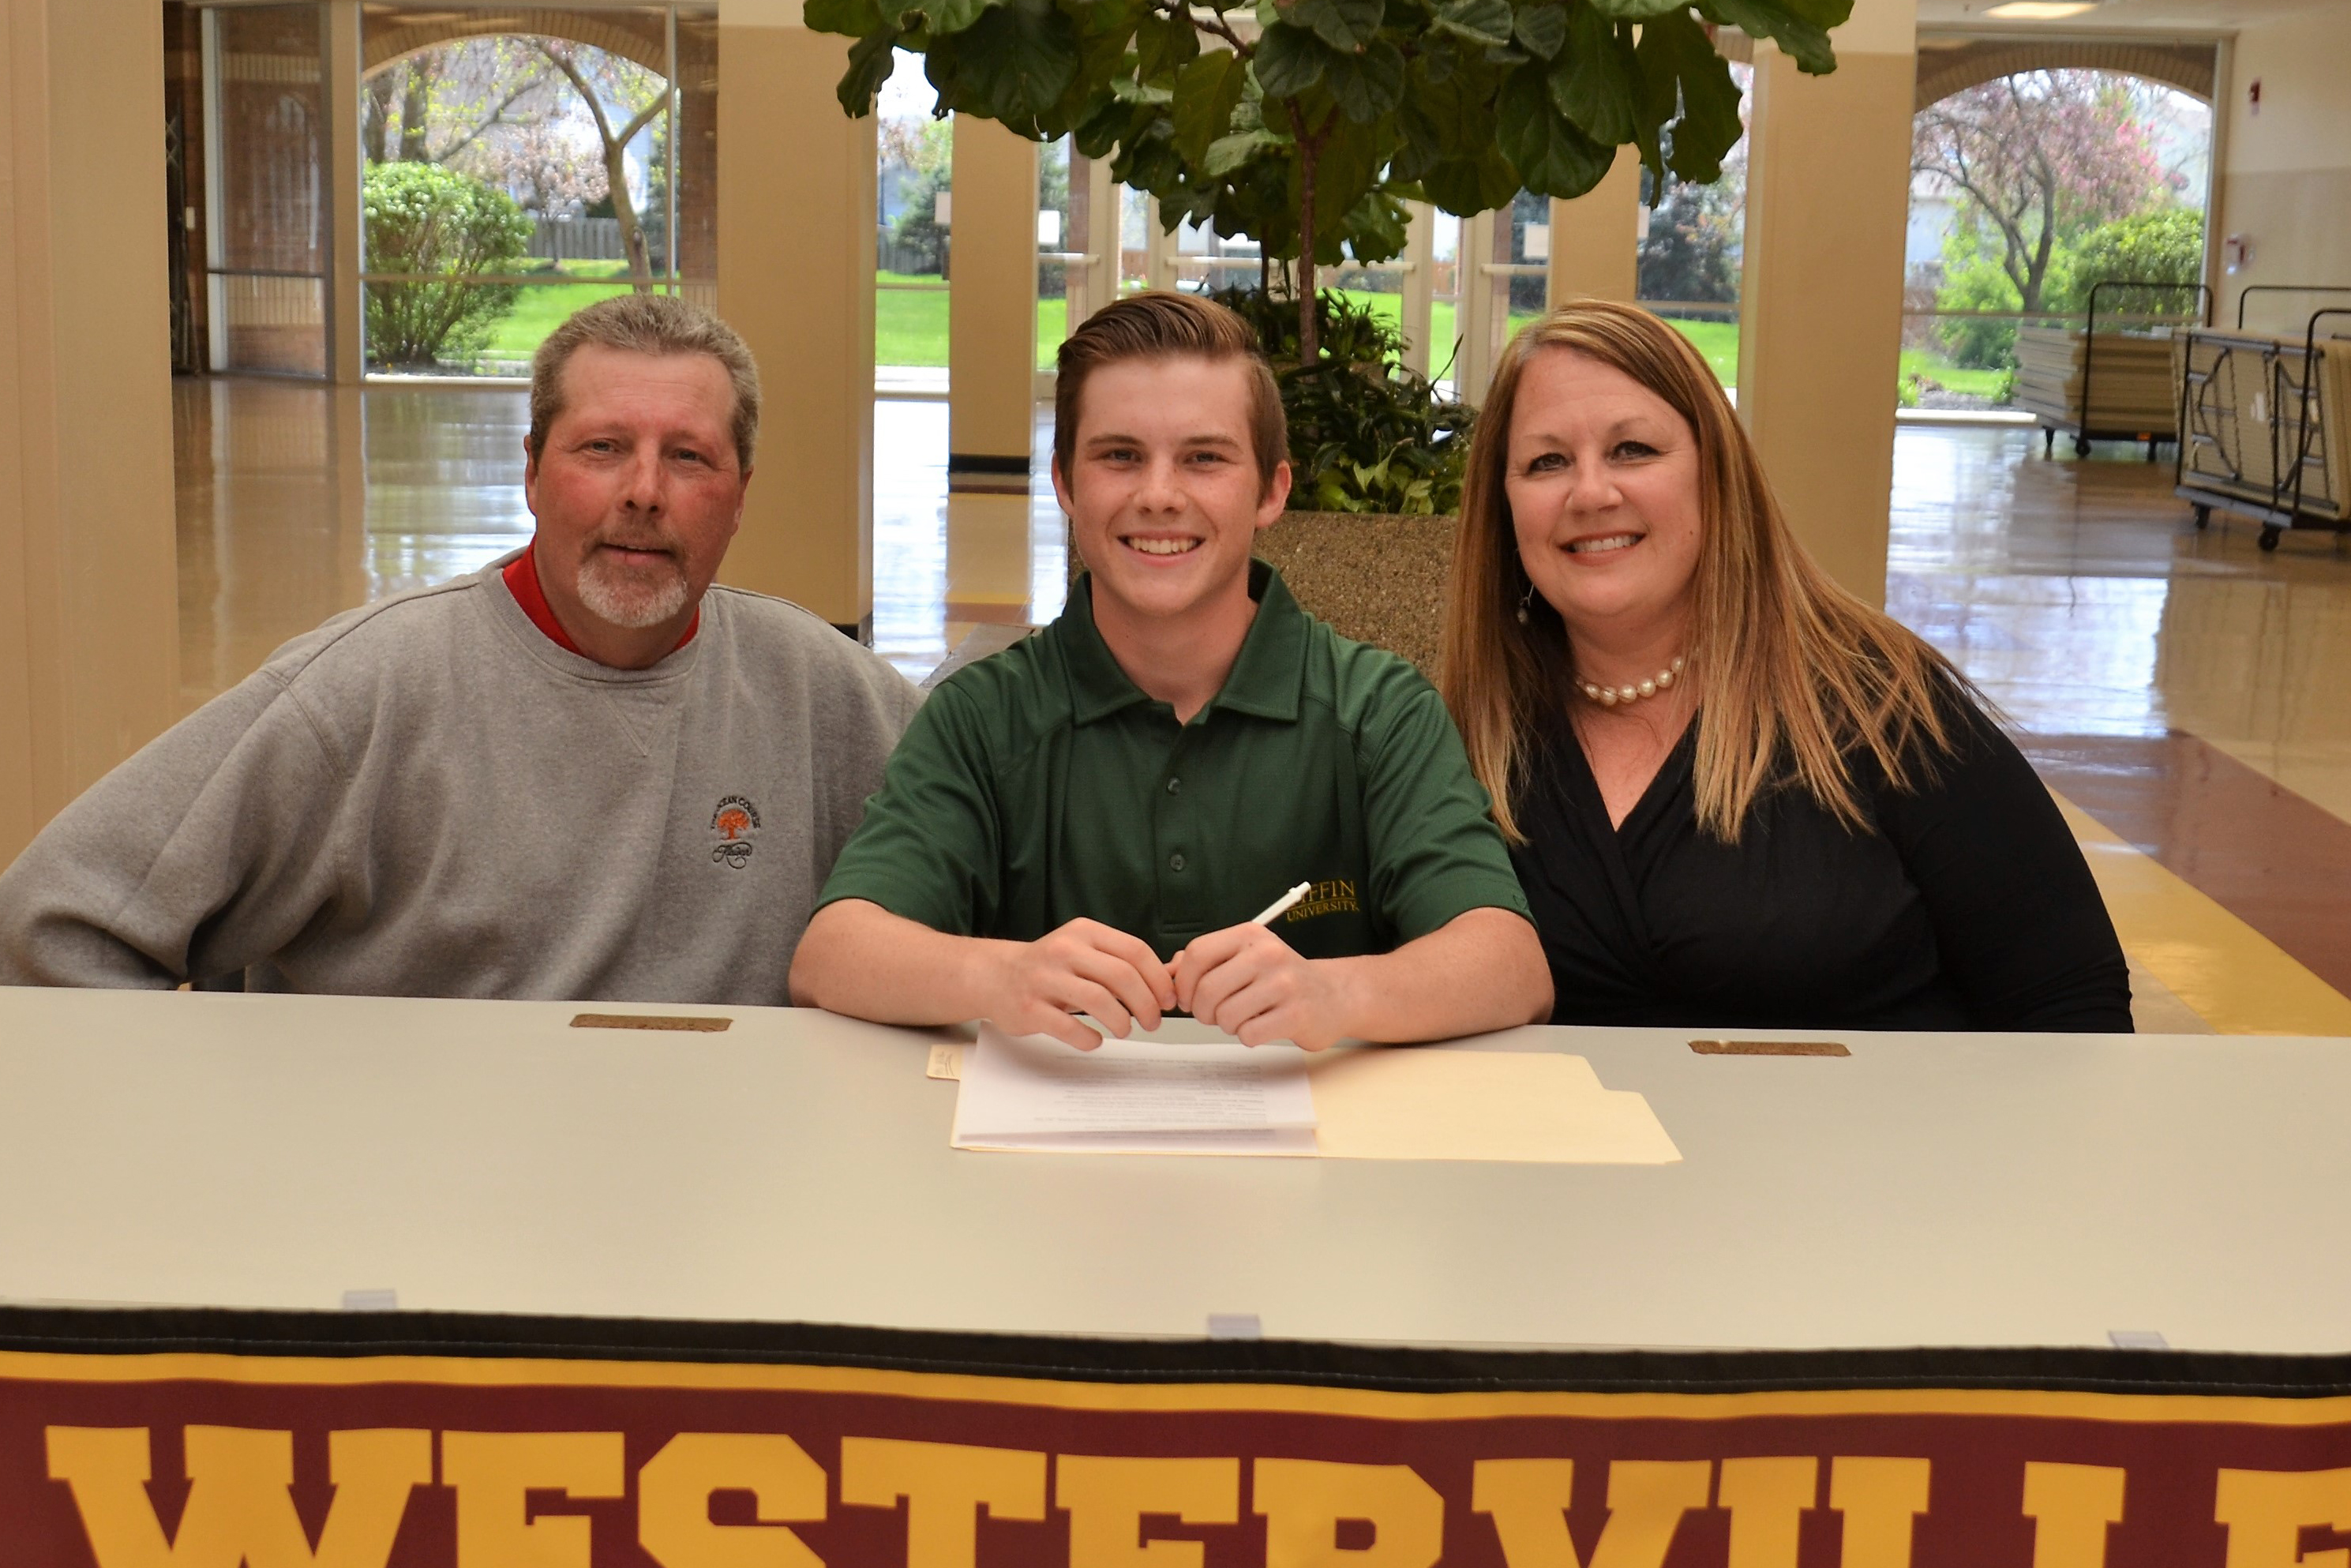 Quinn Gray pictured with his parents